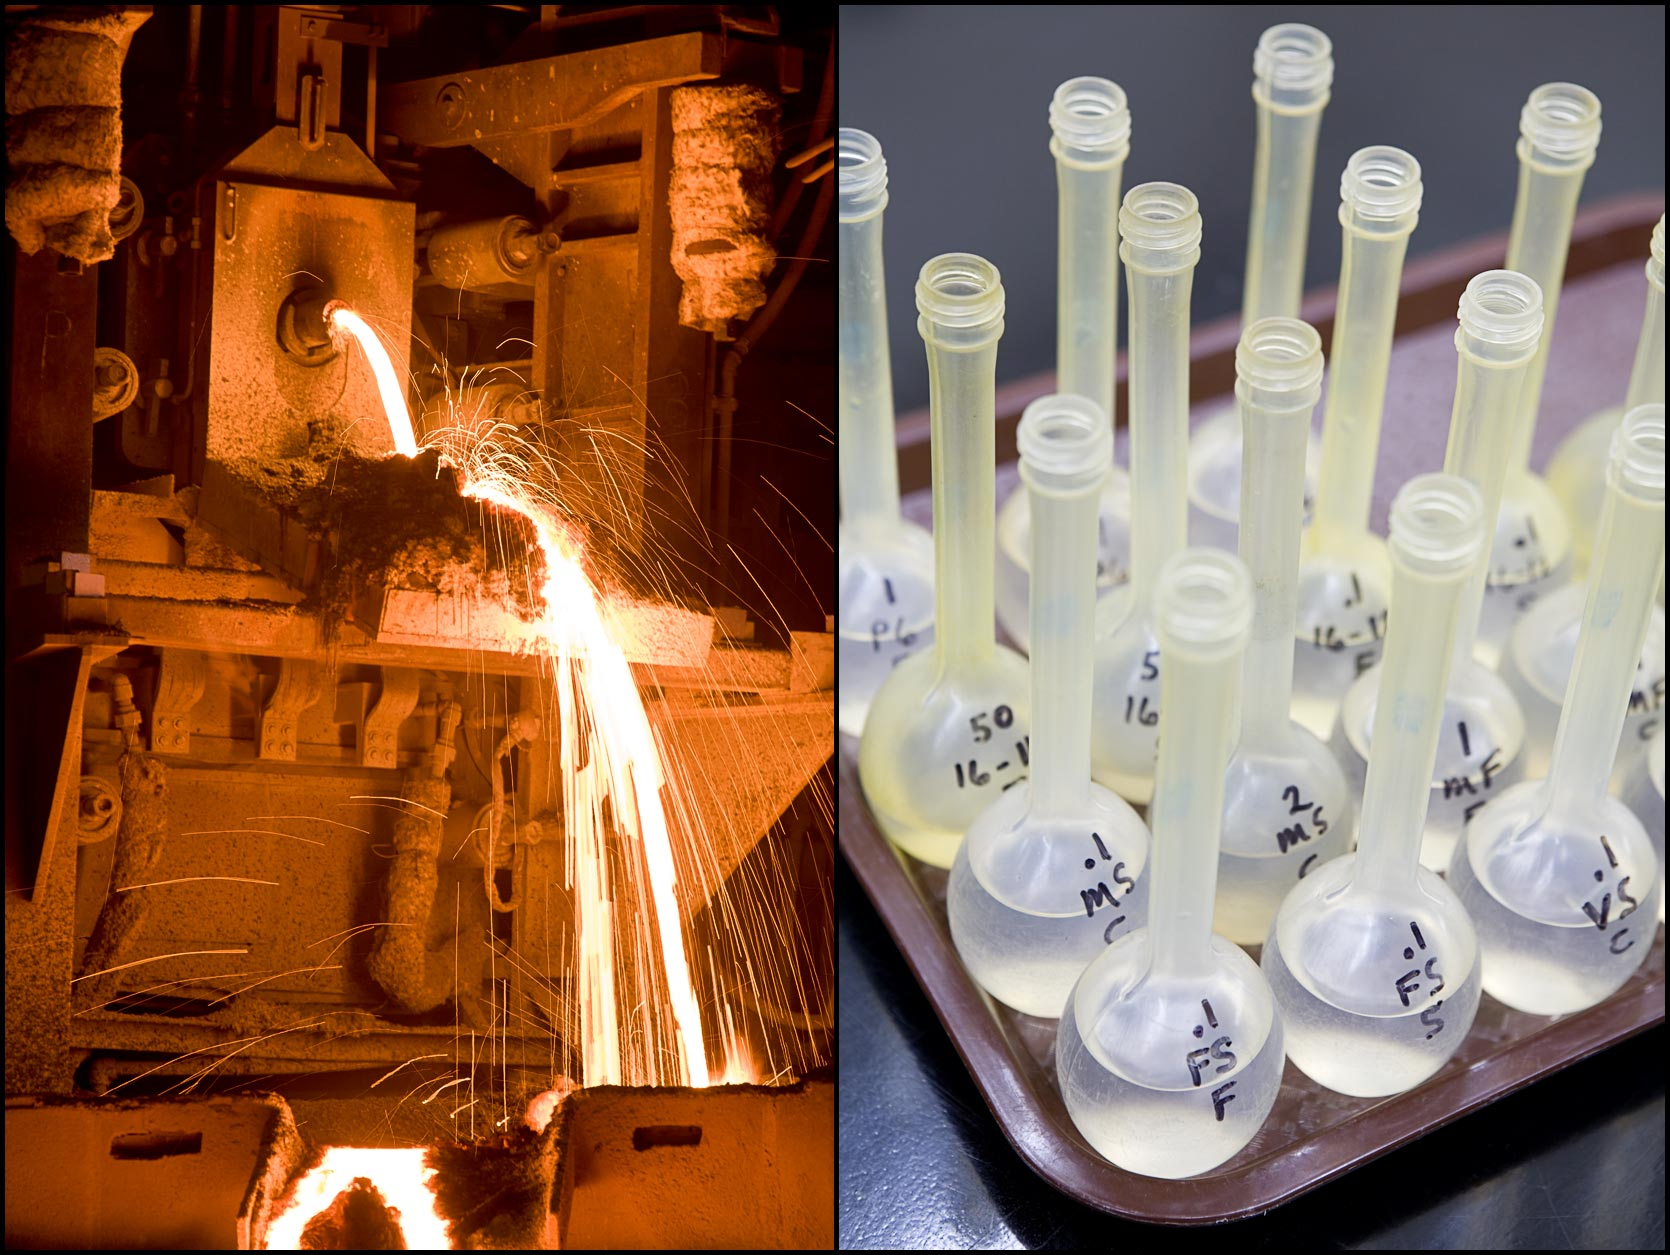 Chemical plant operations: Detail molten metal pour (L), Detail of liquid samples in flasks in quality control laboratory (R).